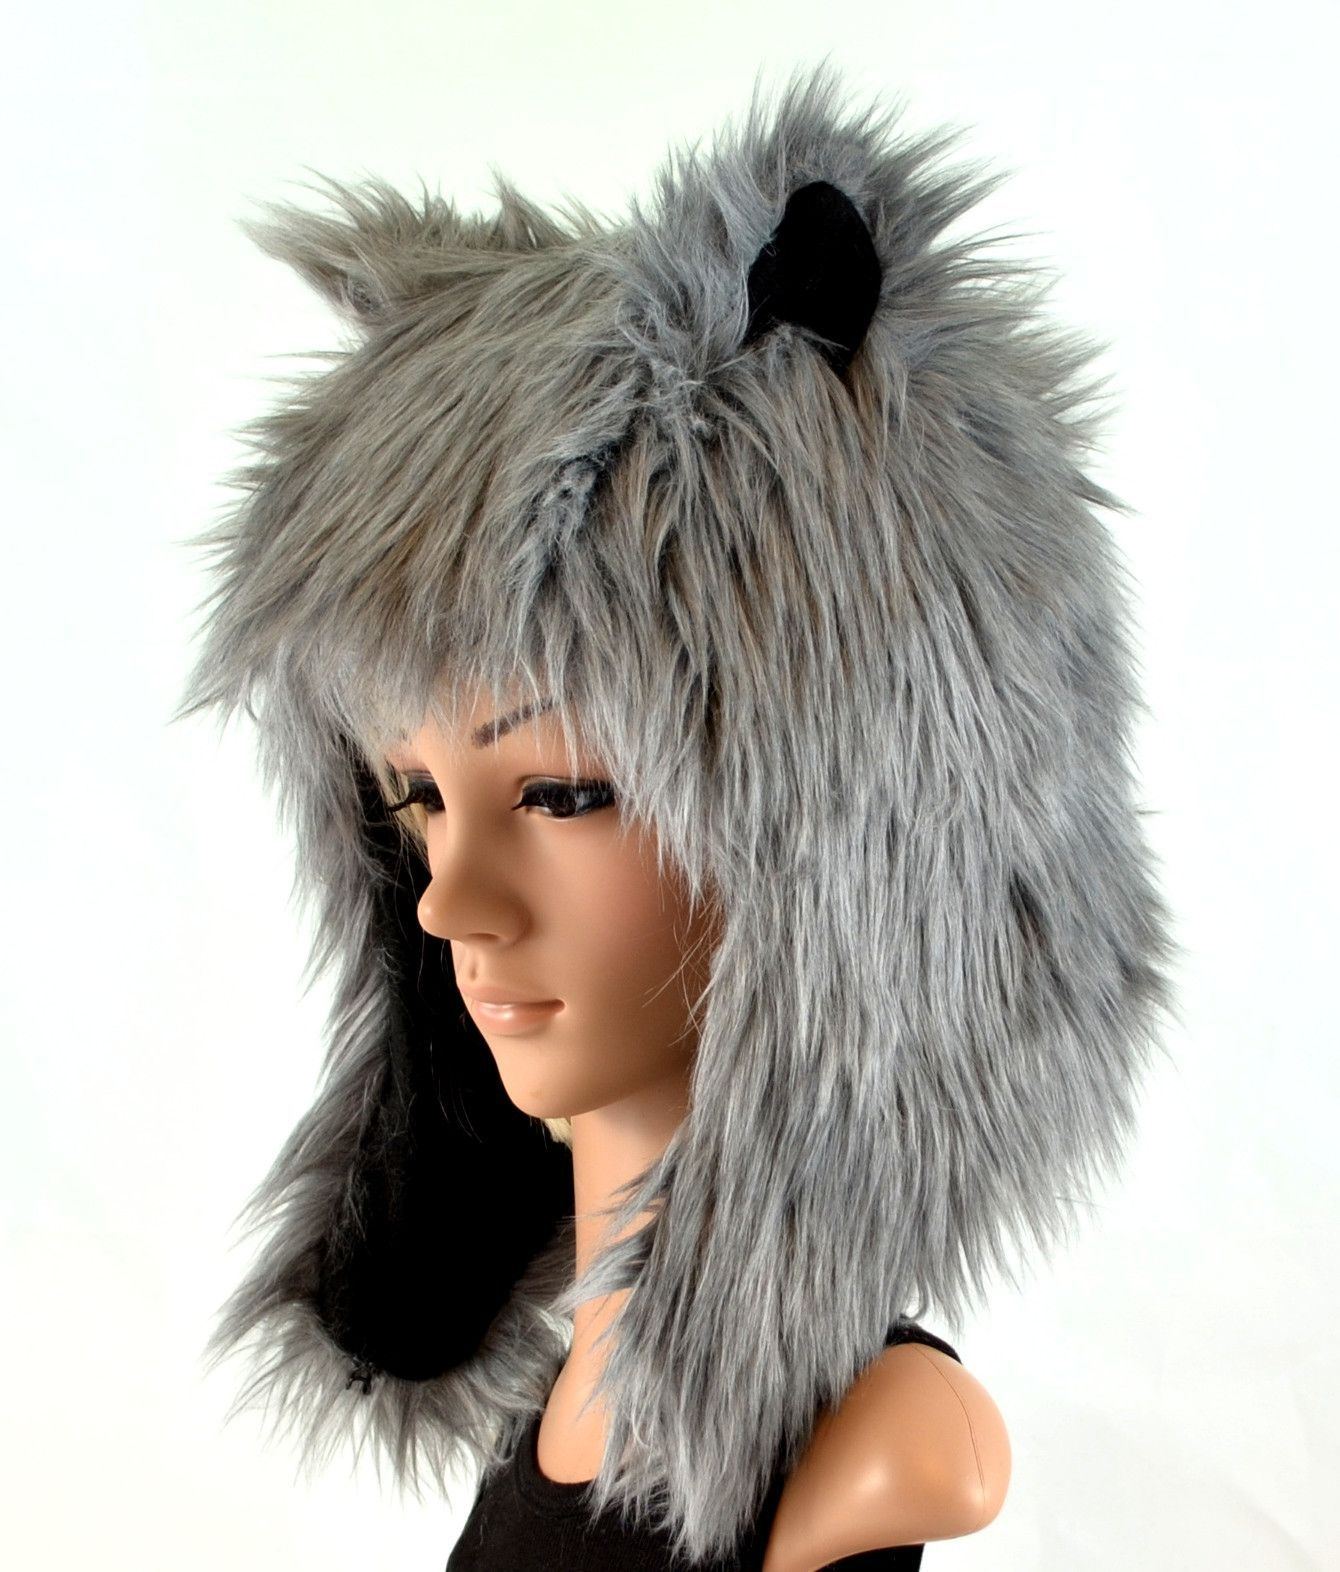 fd2107bb2f3 This gray wolf hat is made of a super soft gray faux fur and it is